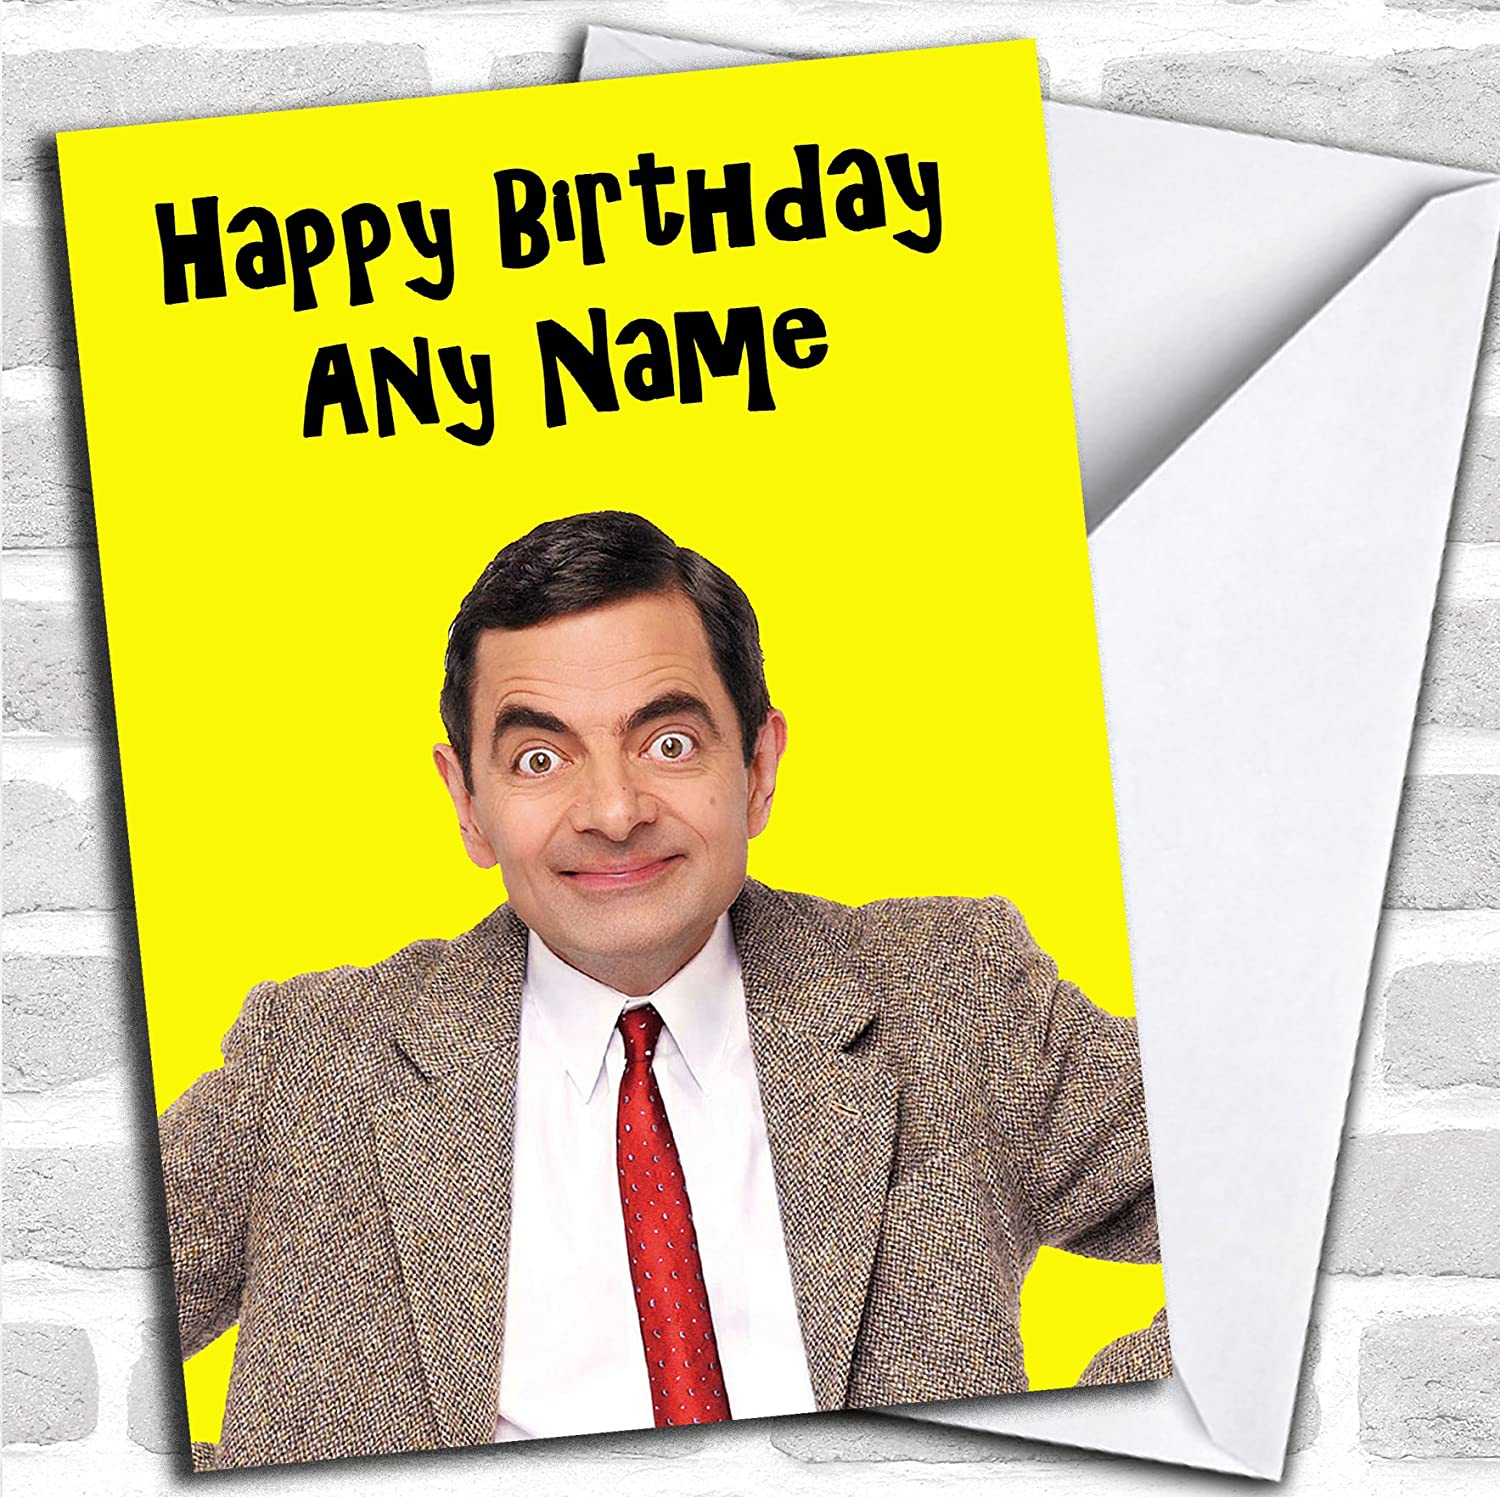 Can be personalised Mr Bean Happy Birthday Coaster